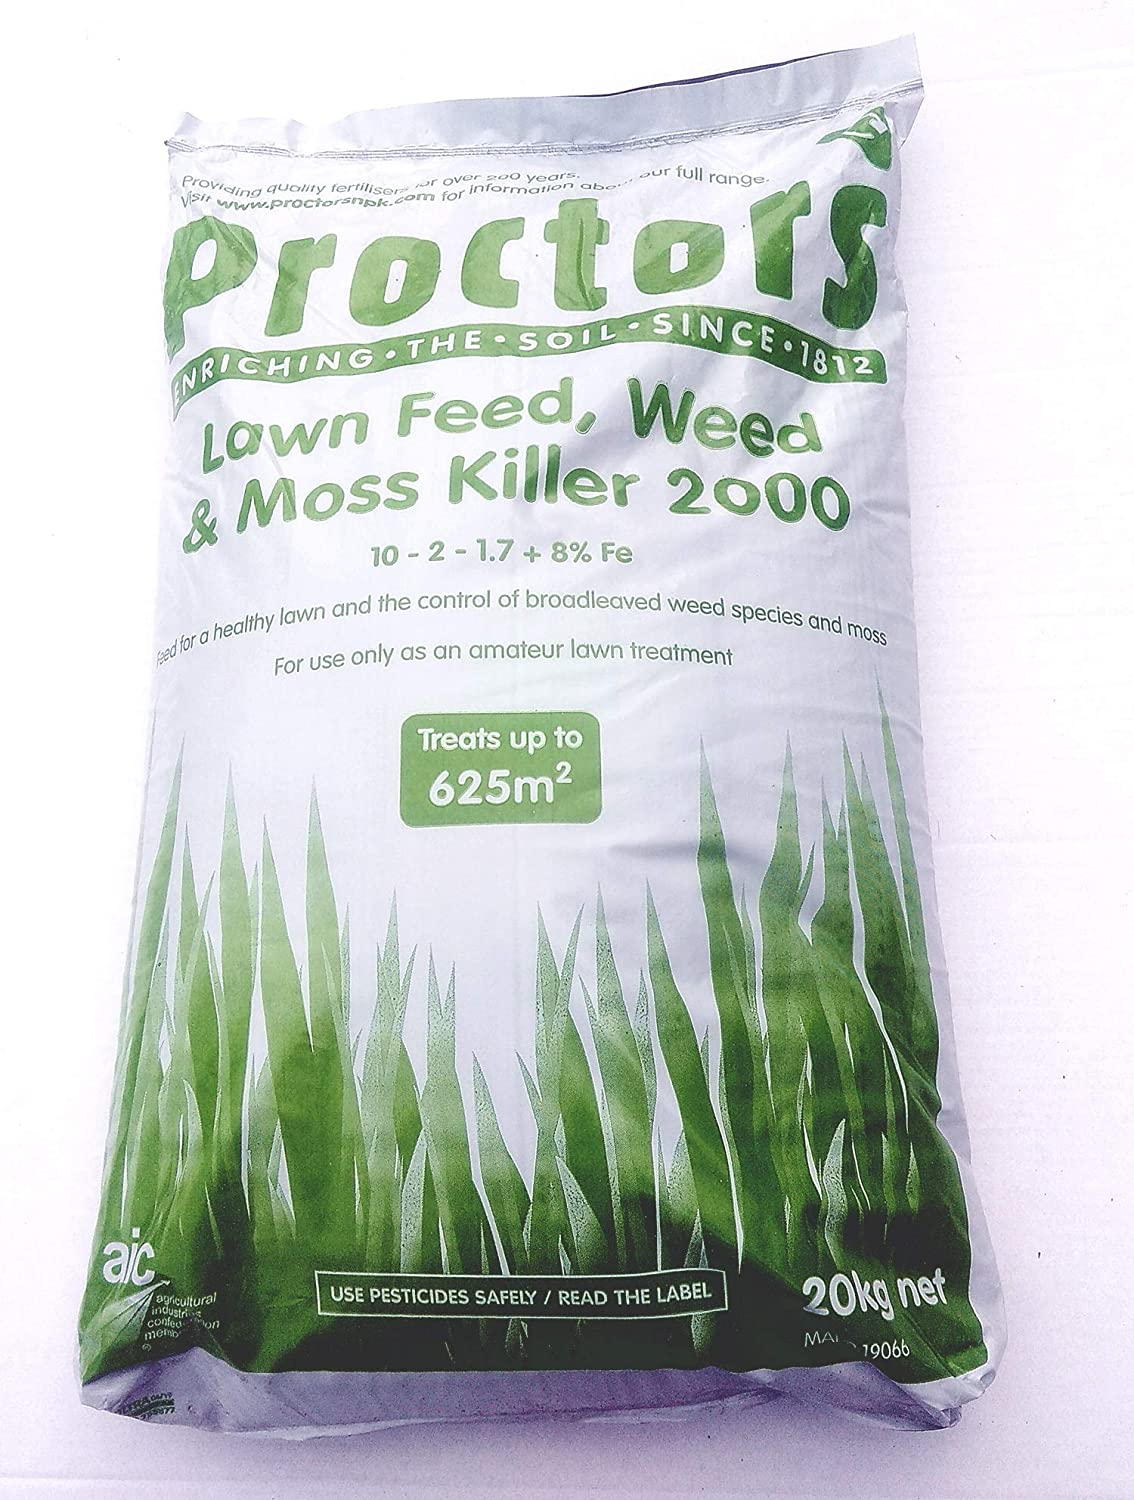 Lawn Fertiliser Weed Feed And Moss Killer 20kg Sack Amazon Co Uk Garden Outdoors